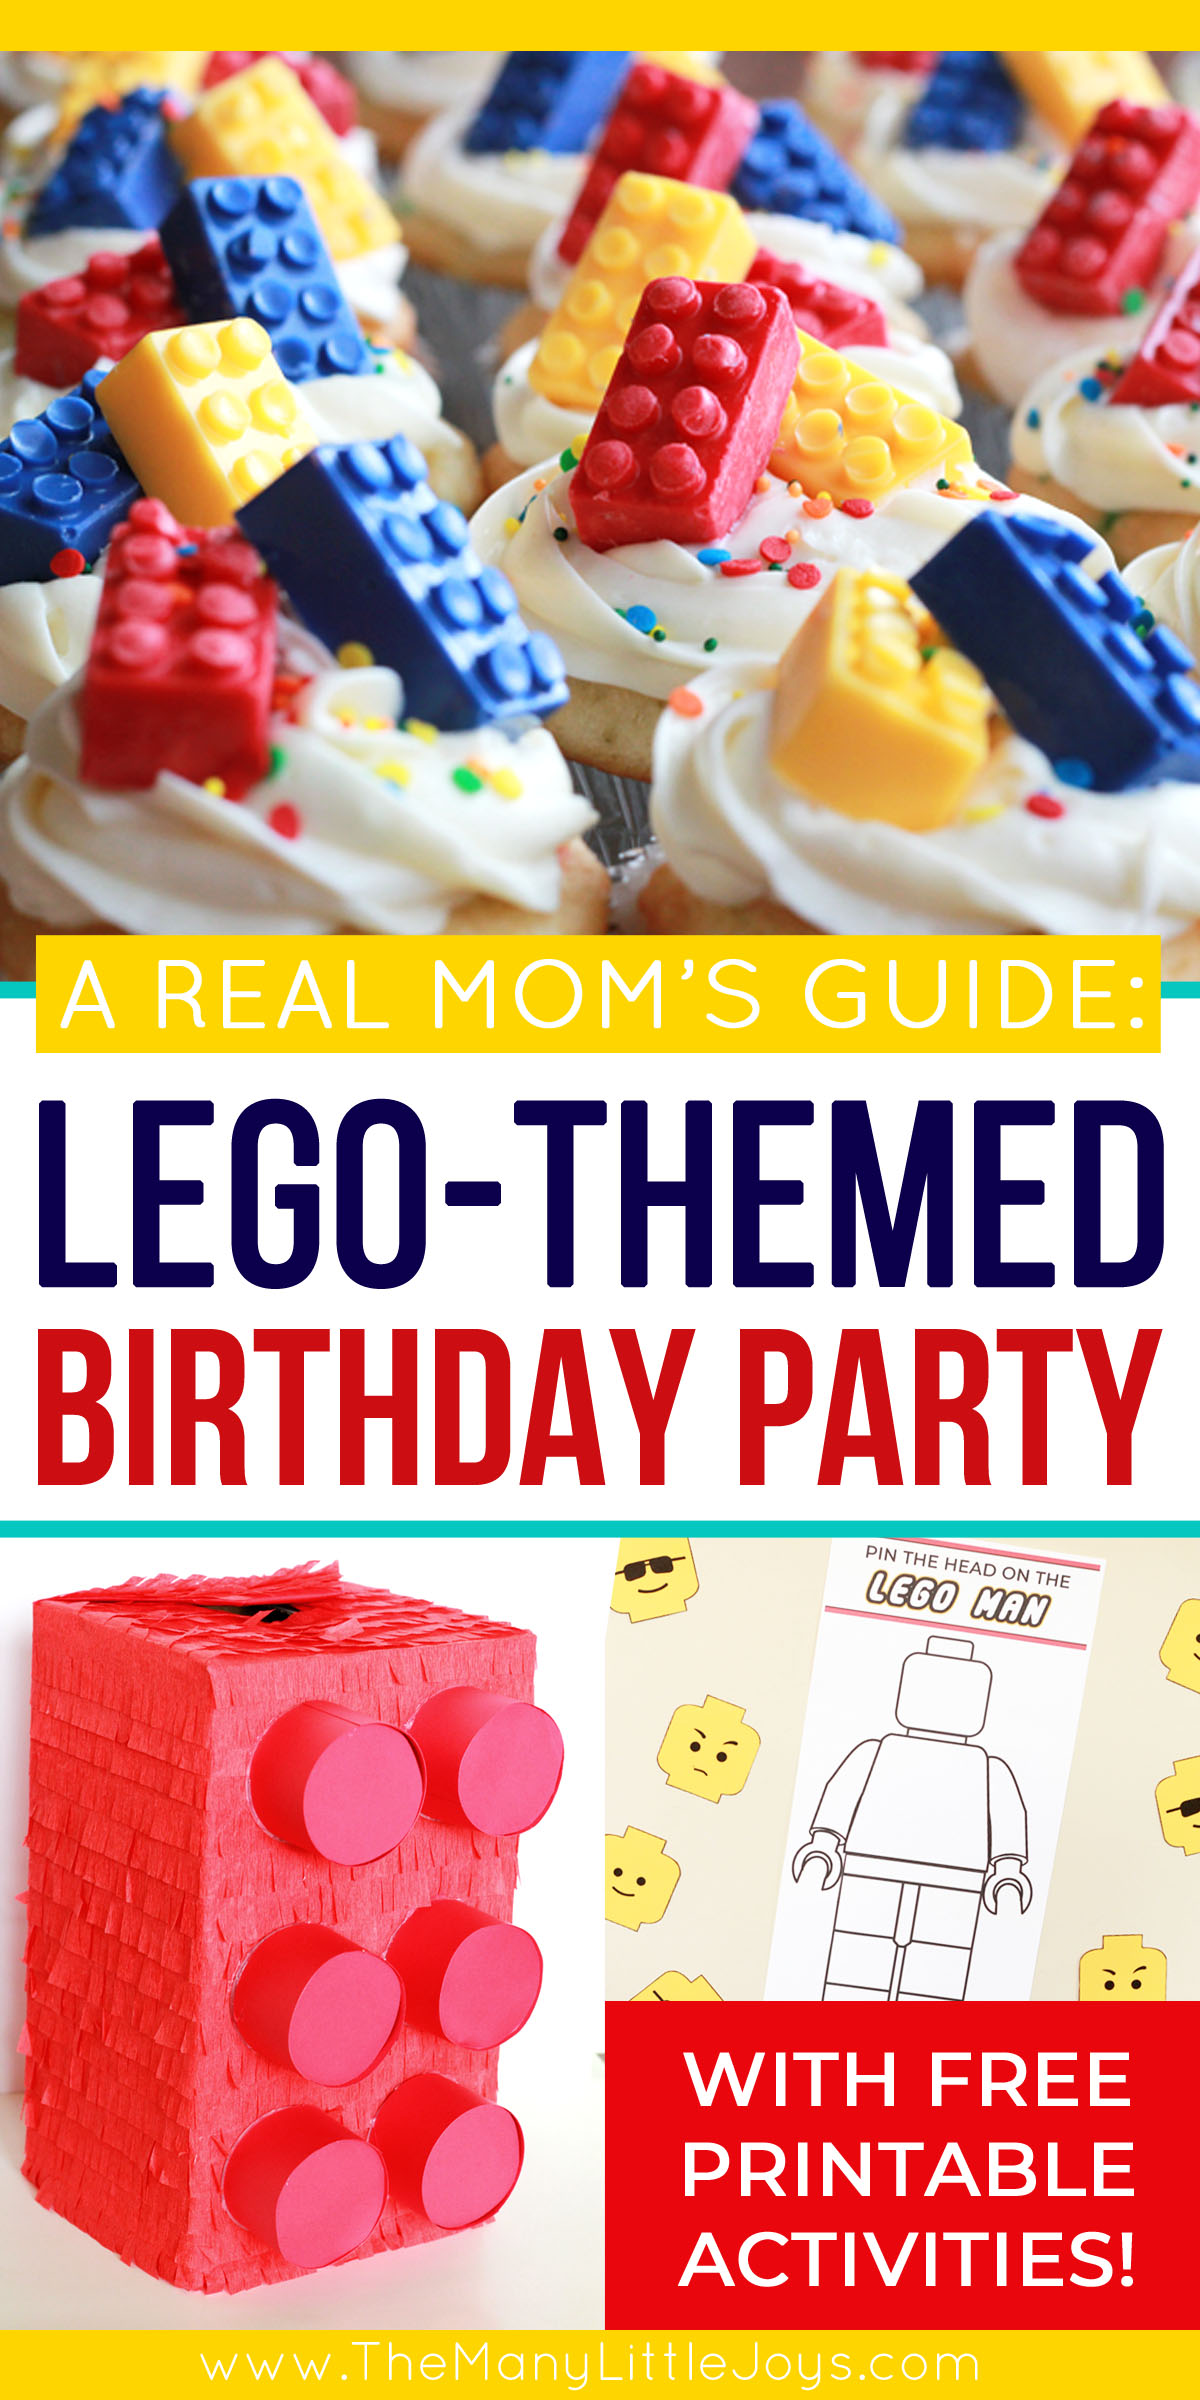 photo relating to Printable Lego Birthday Invitations identify How in the direction of toss a Lego birthday celebration: a true mothers expert - The